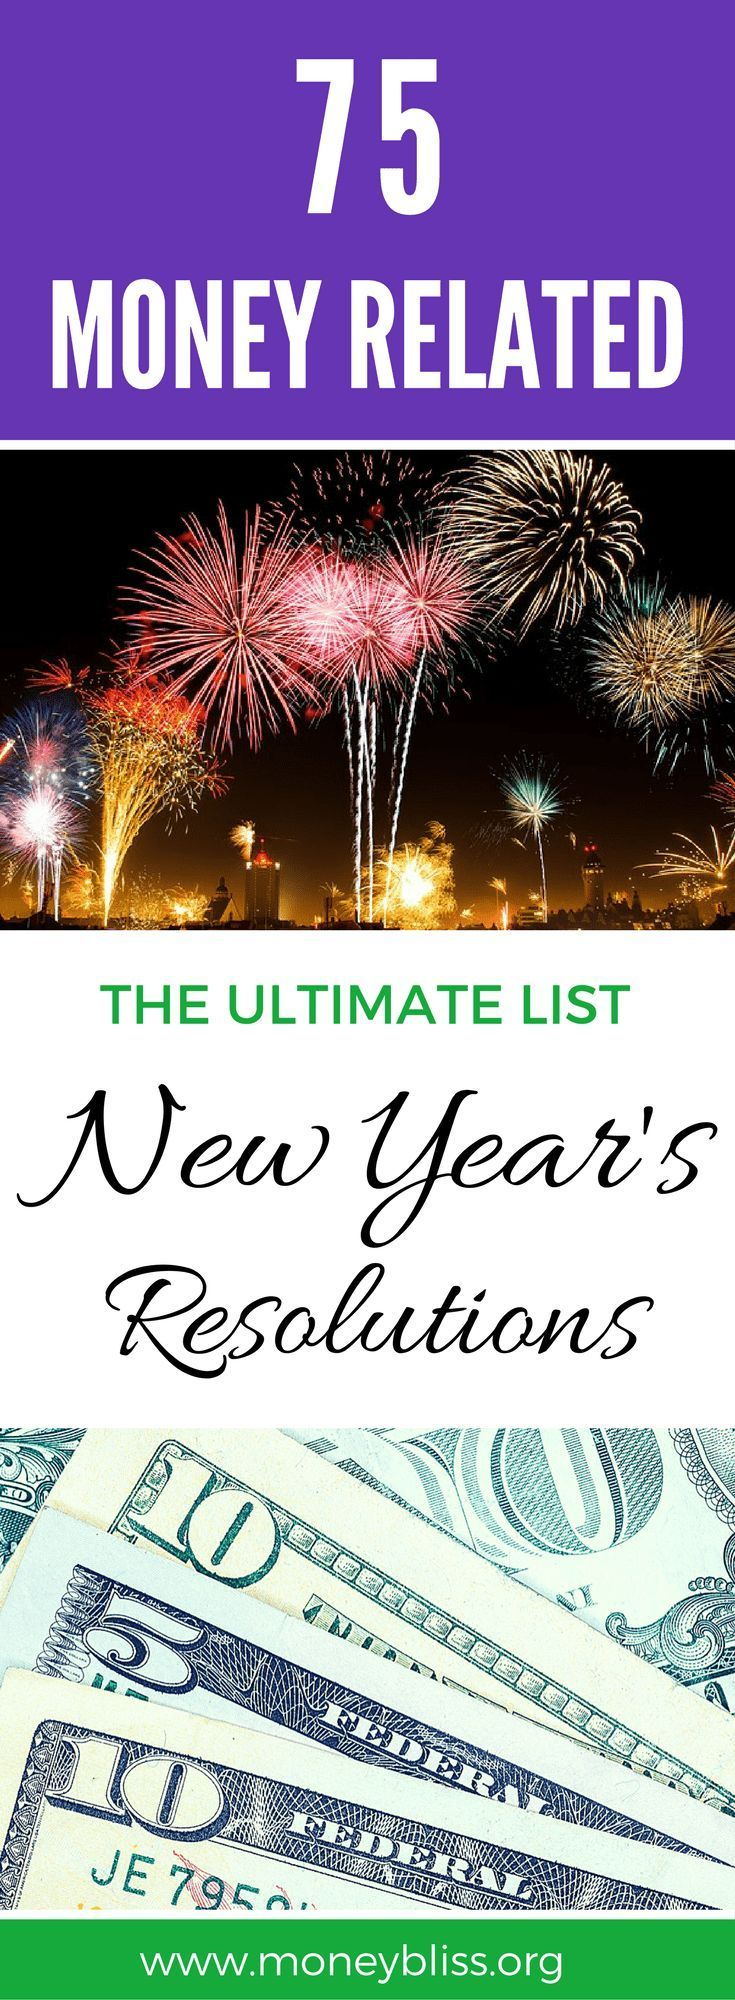 Ultimate List of New Year's Money Resolutions for 2020